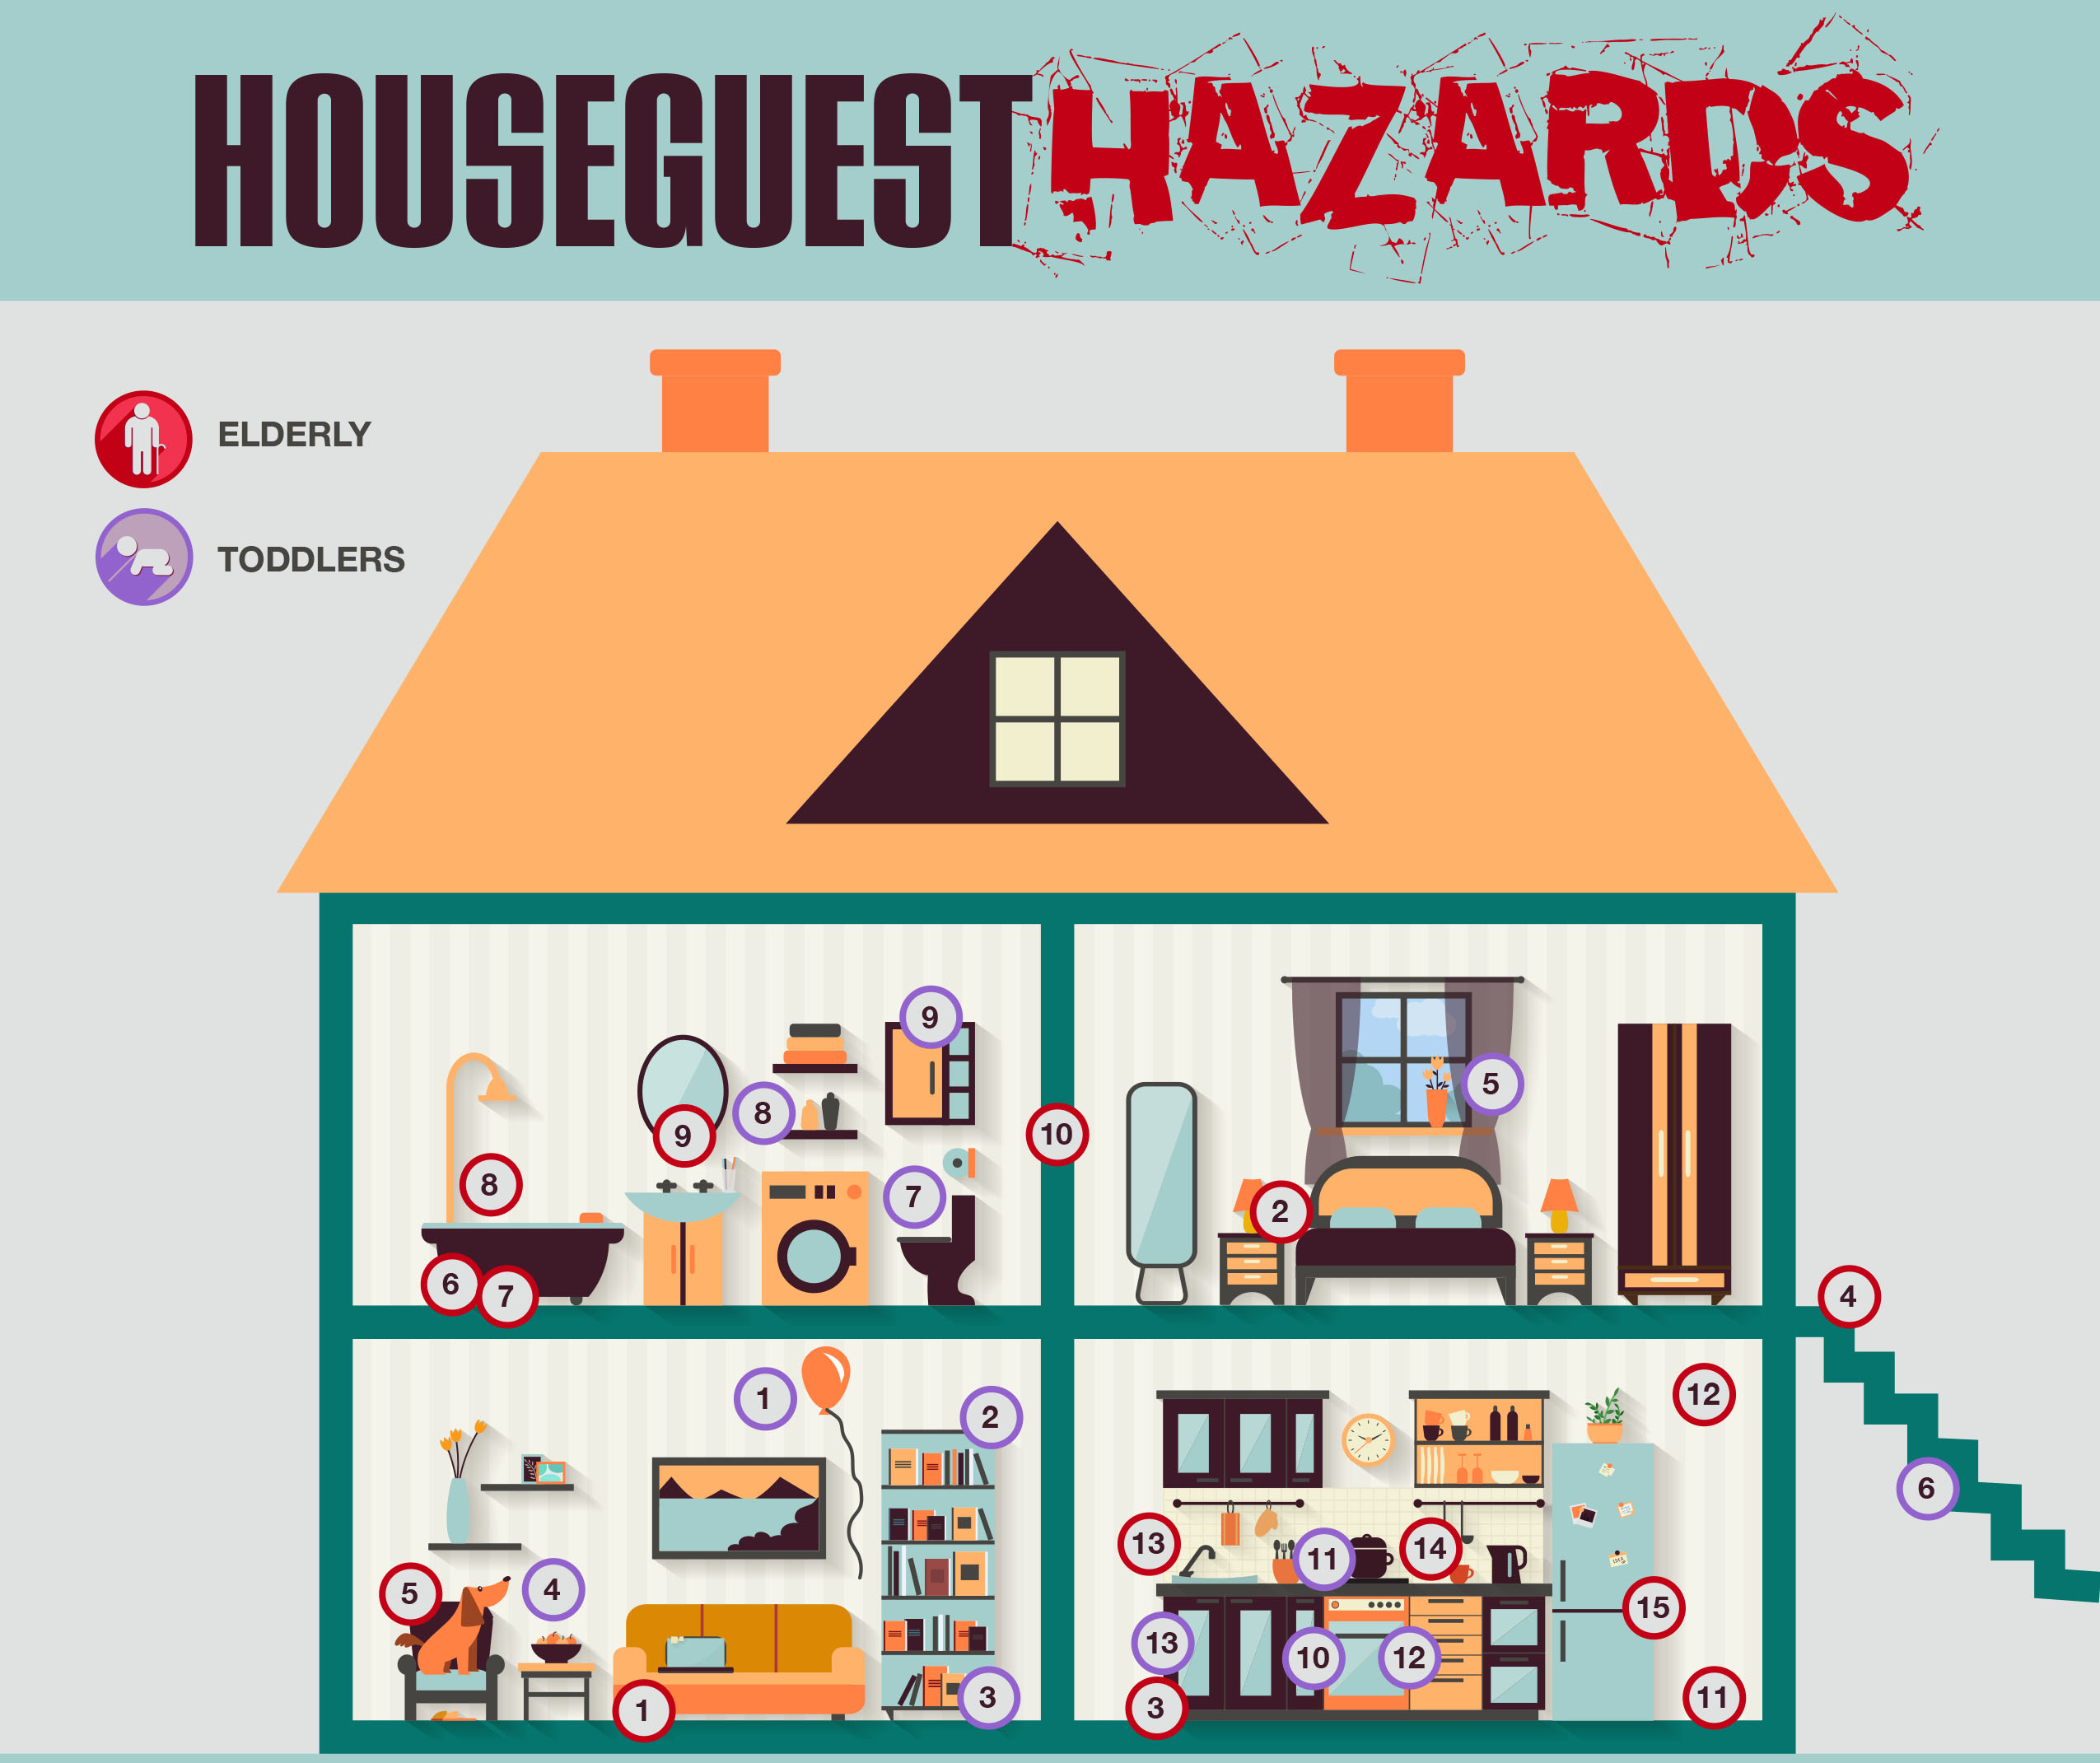 Home Hazards for House Guests